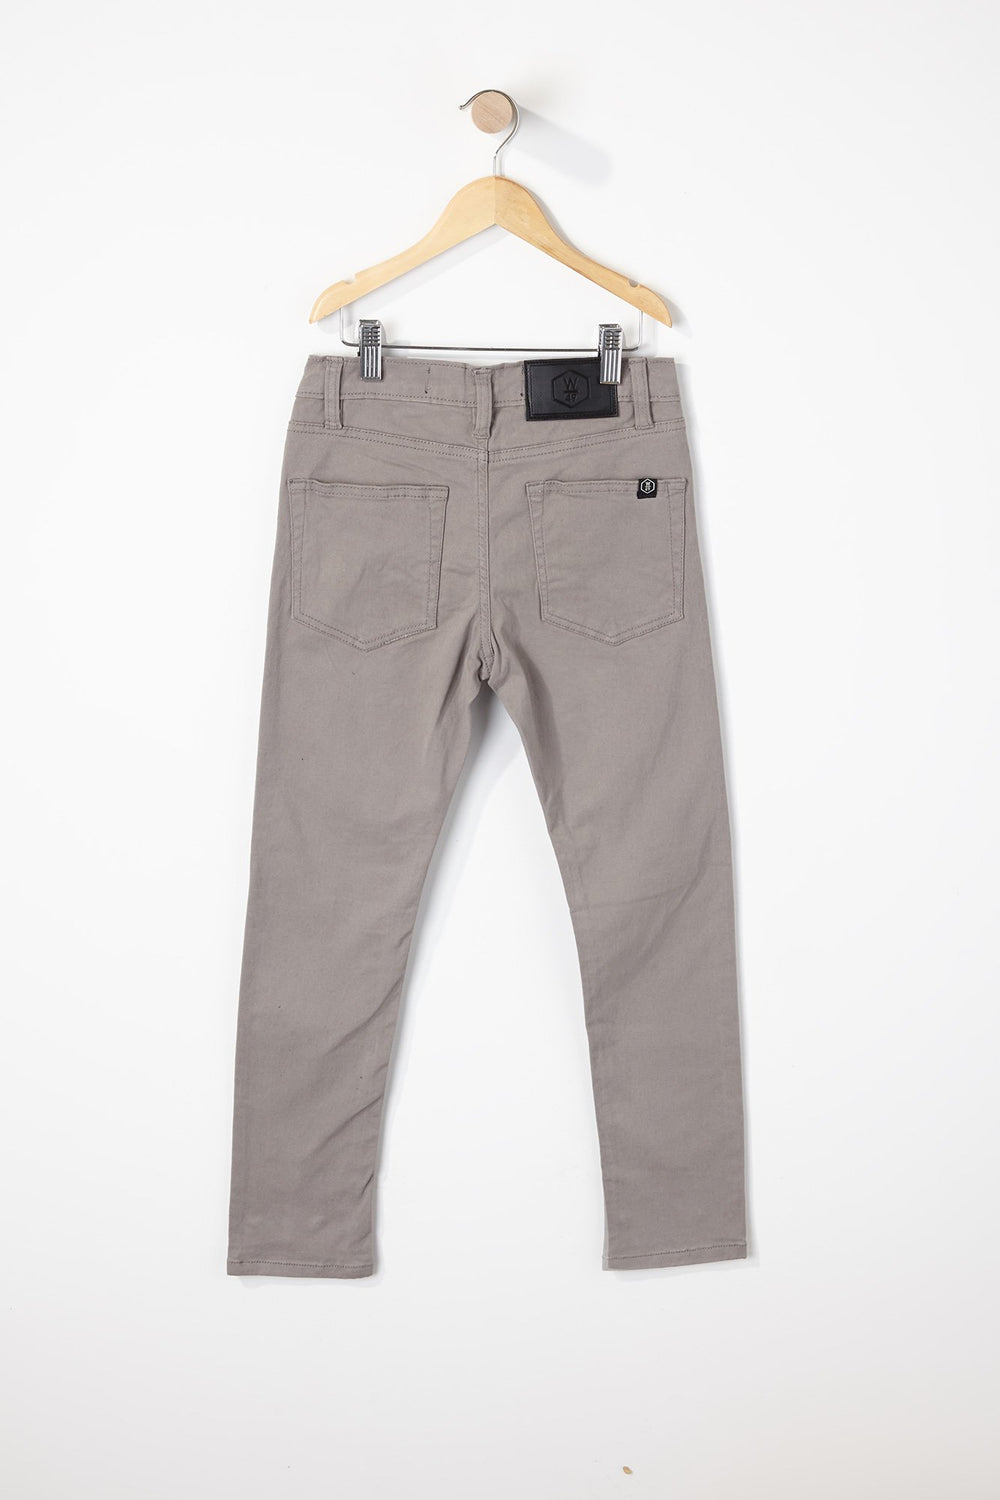 West49 Boys Solid Colour Skinny Pants Heather Grey